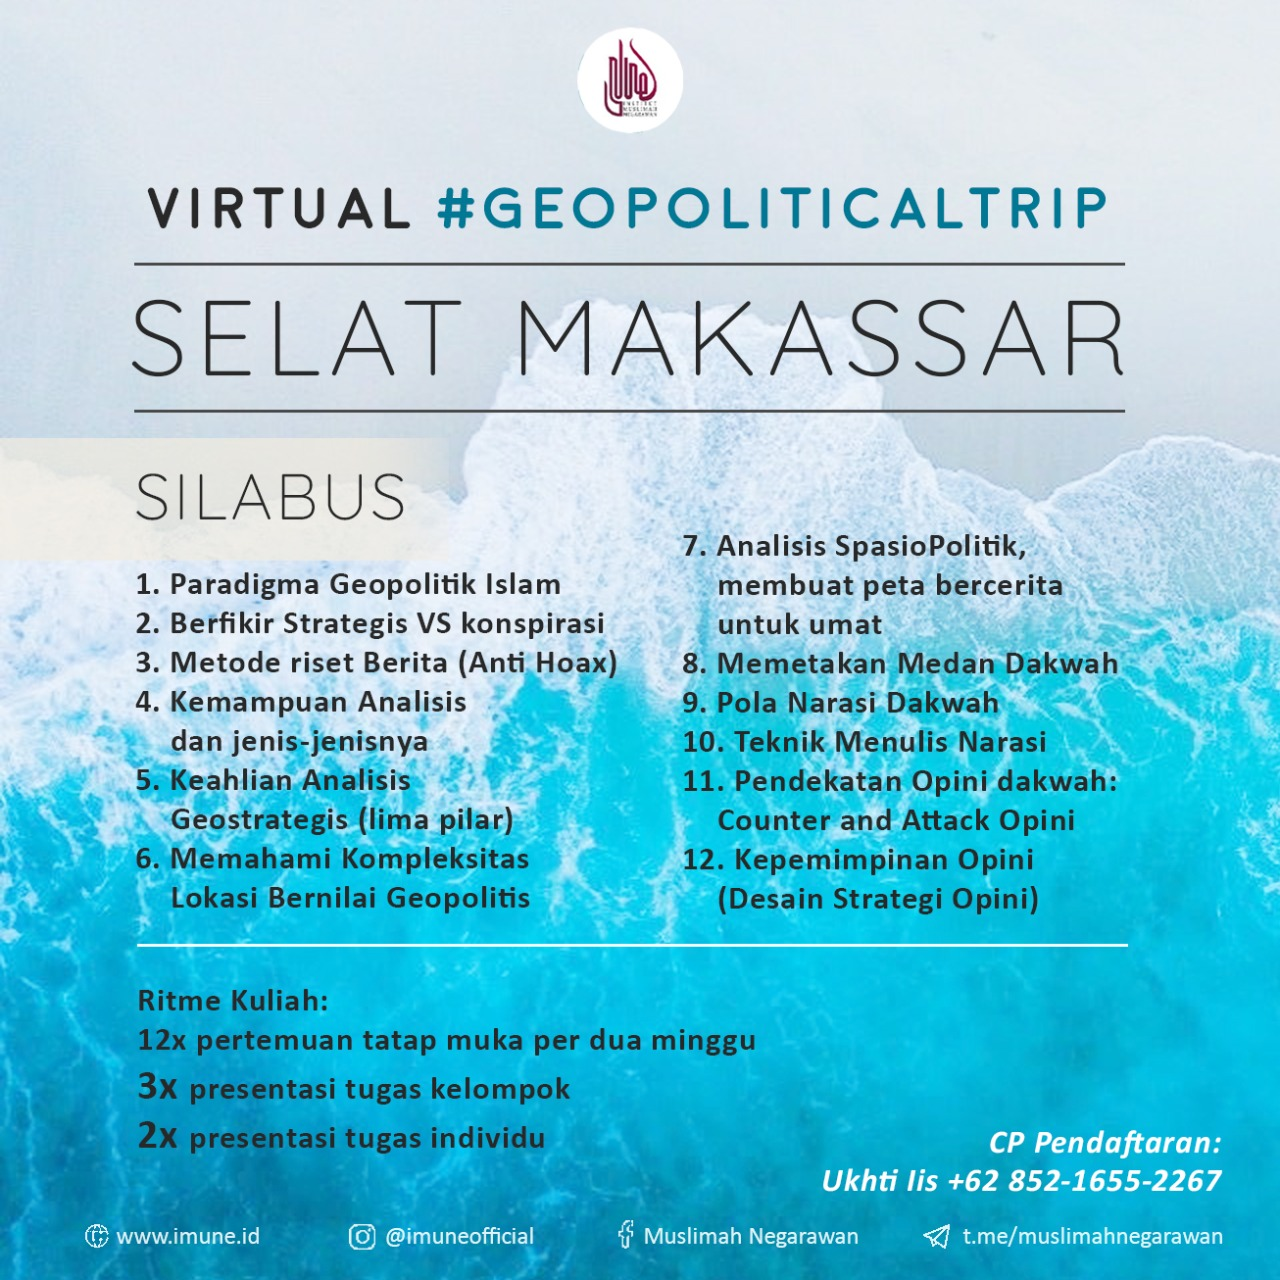 Virtual #GeopoliticalTrip